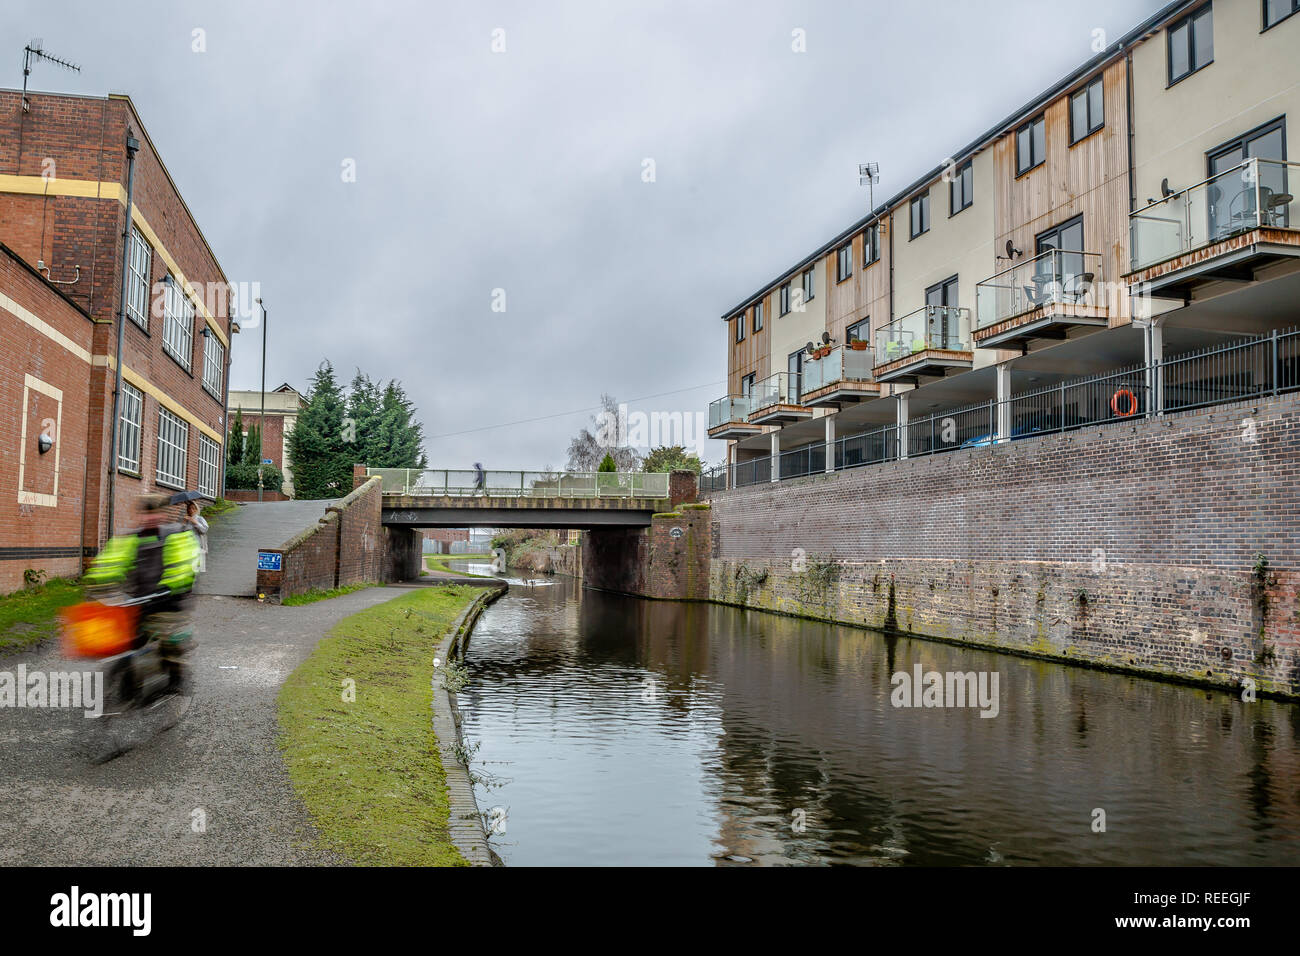 Landscape shot of canal in Kidderminster. - Stock Image